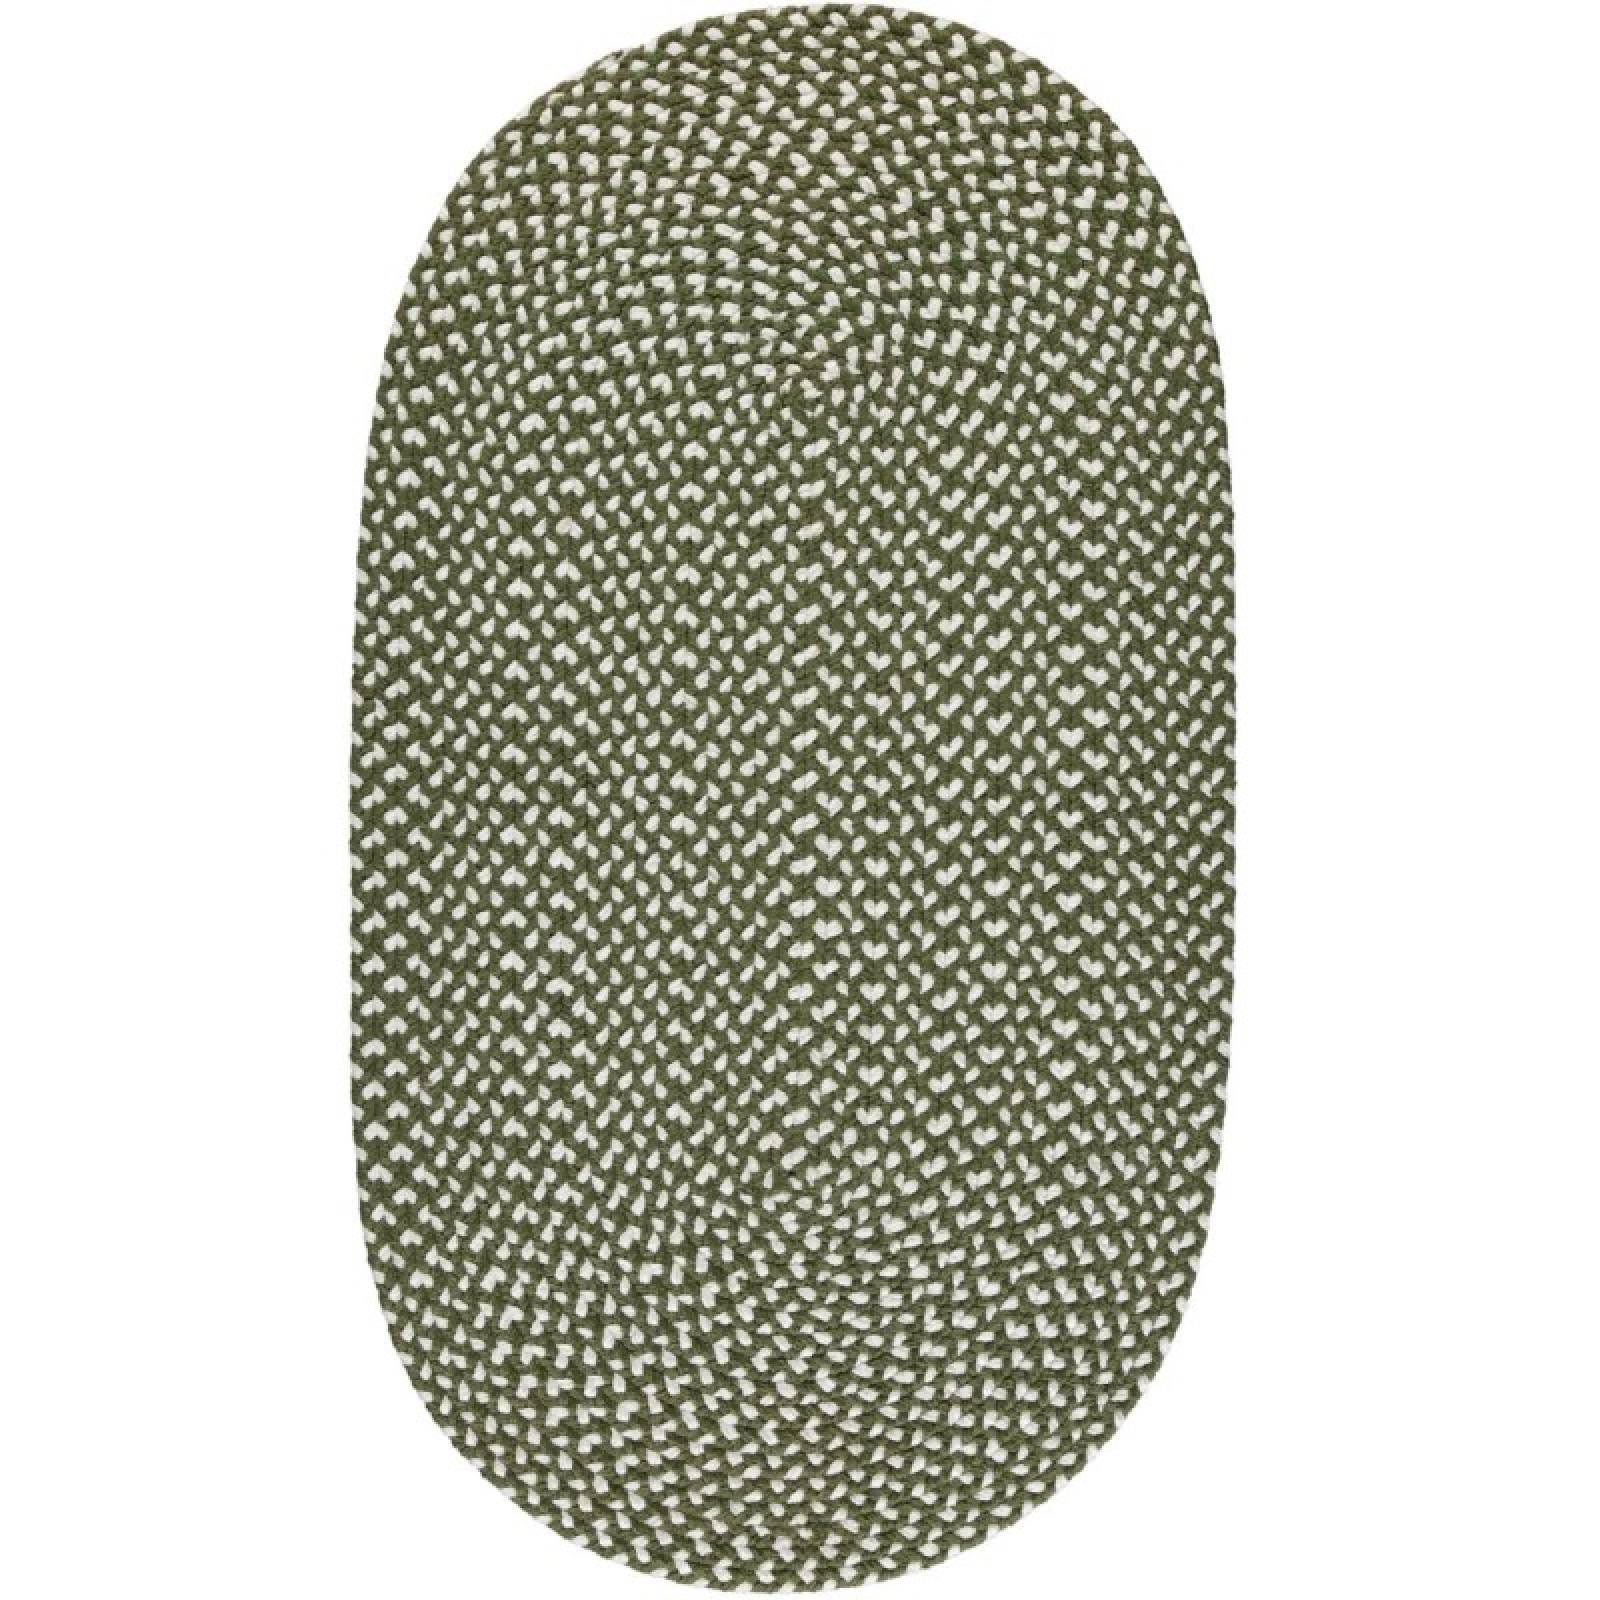 Olive Oval Braided Rug Recycled Plastic 61x91cm